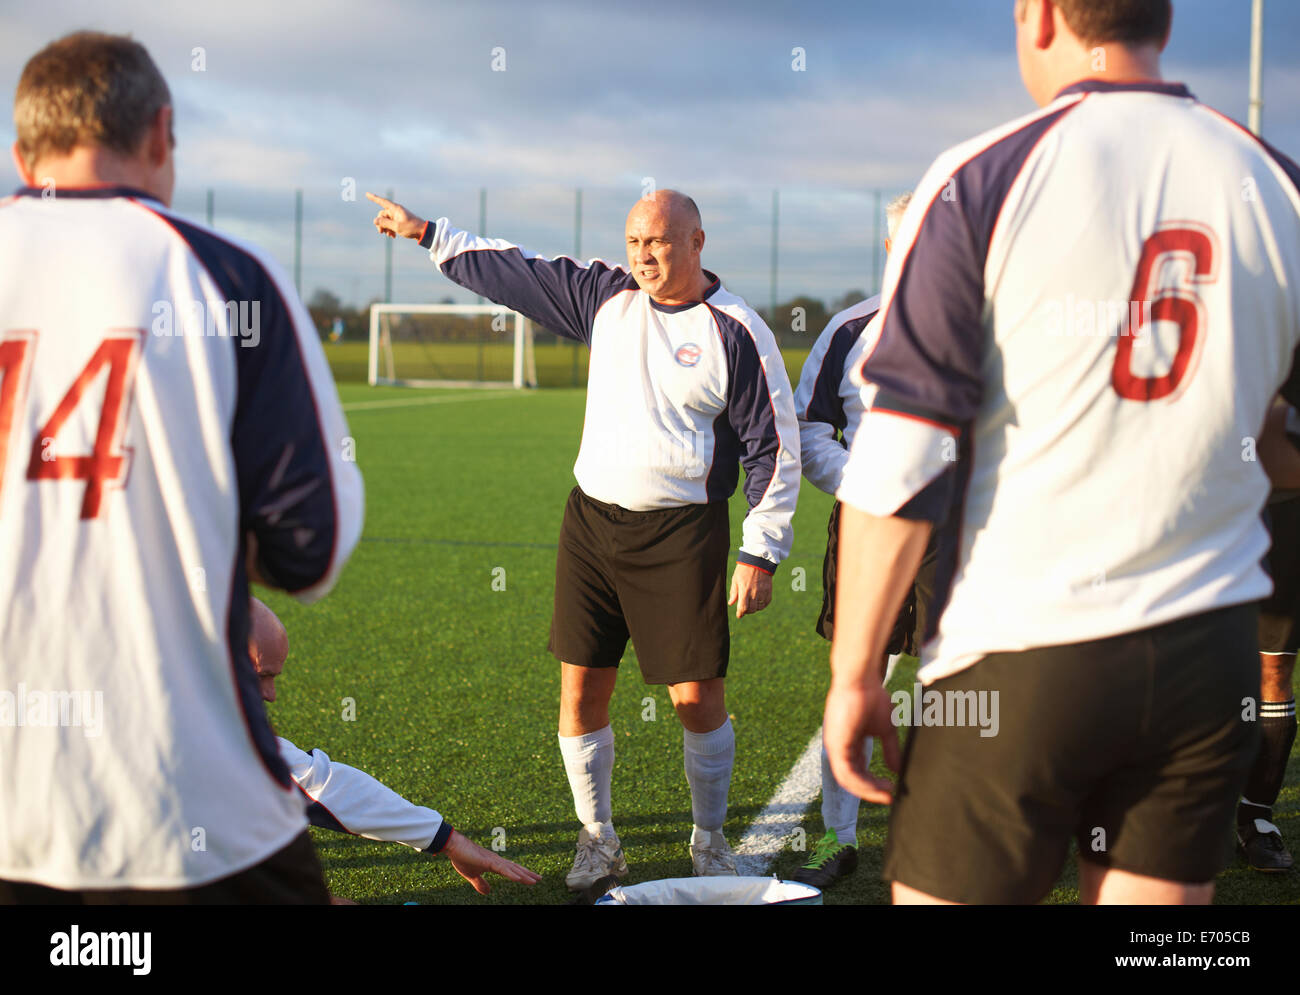 Football players resting at half time - Stock Image